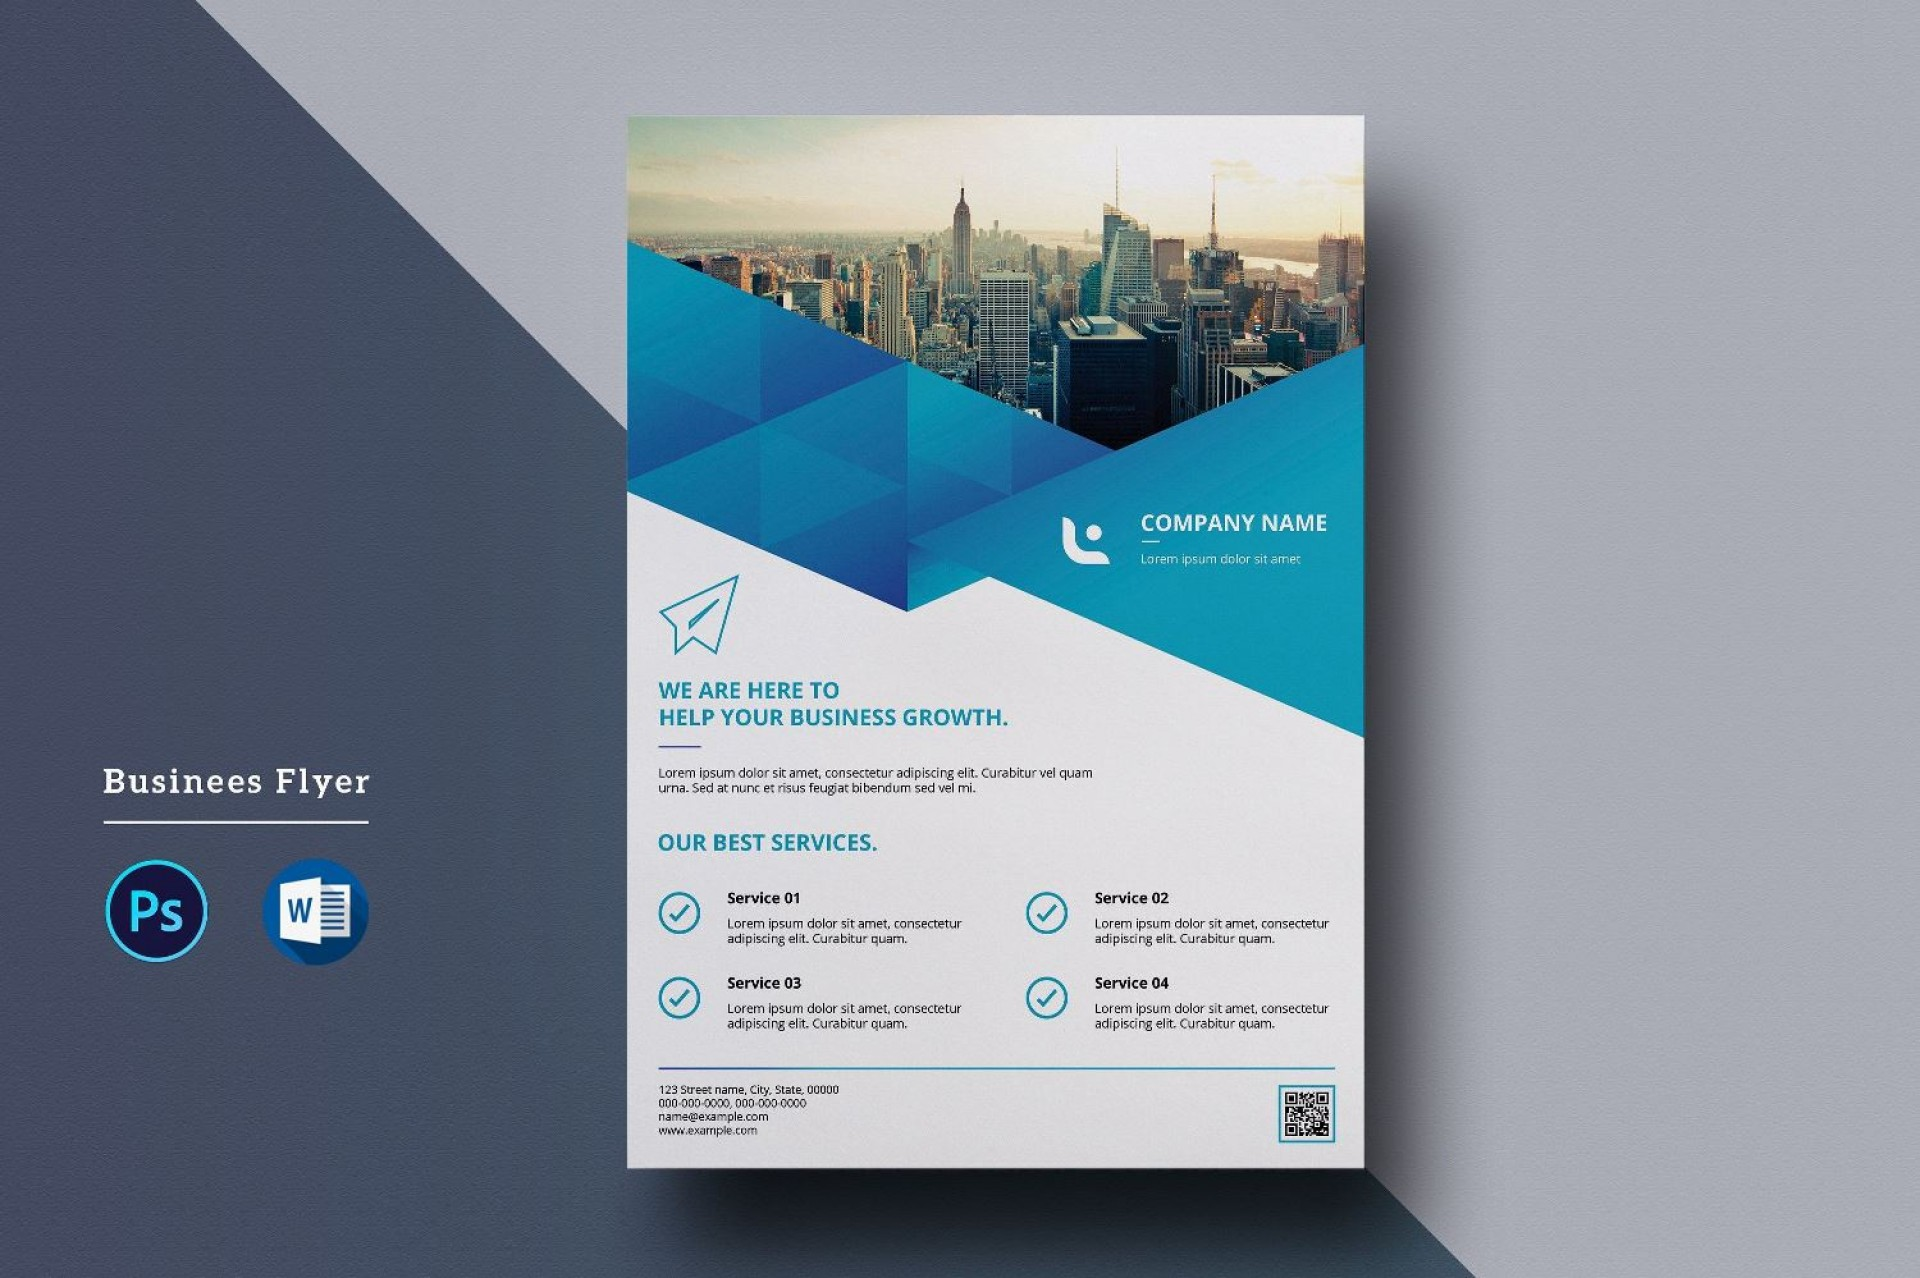 000 Shocking Free Flyer Design Template  Indesign For Word Microsoft1920